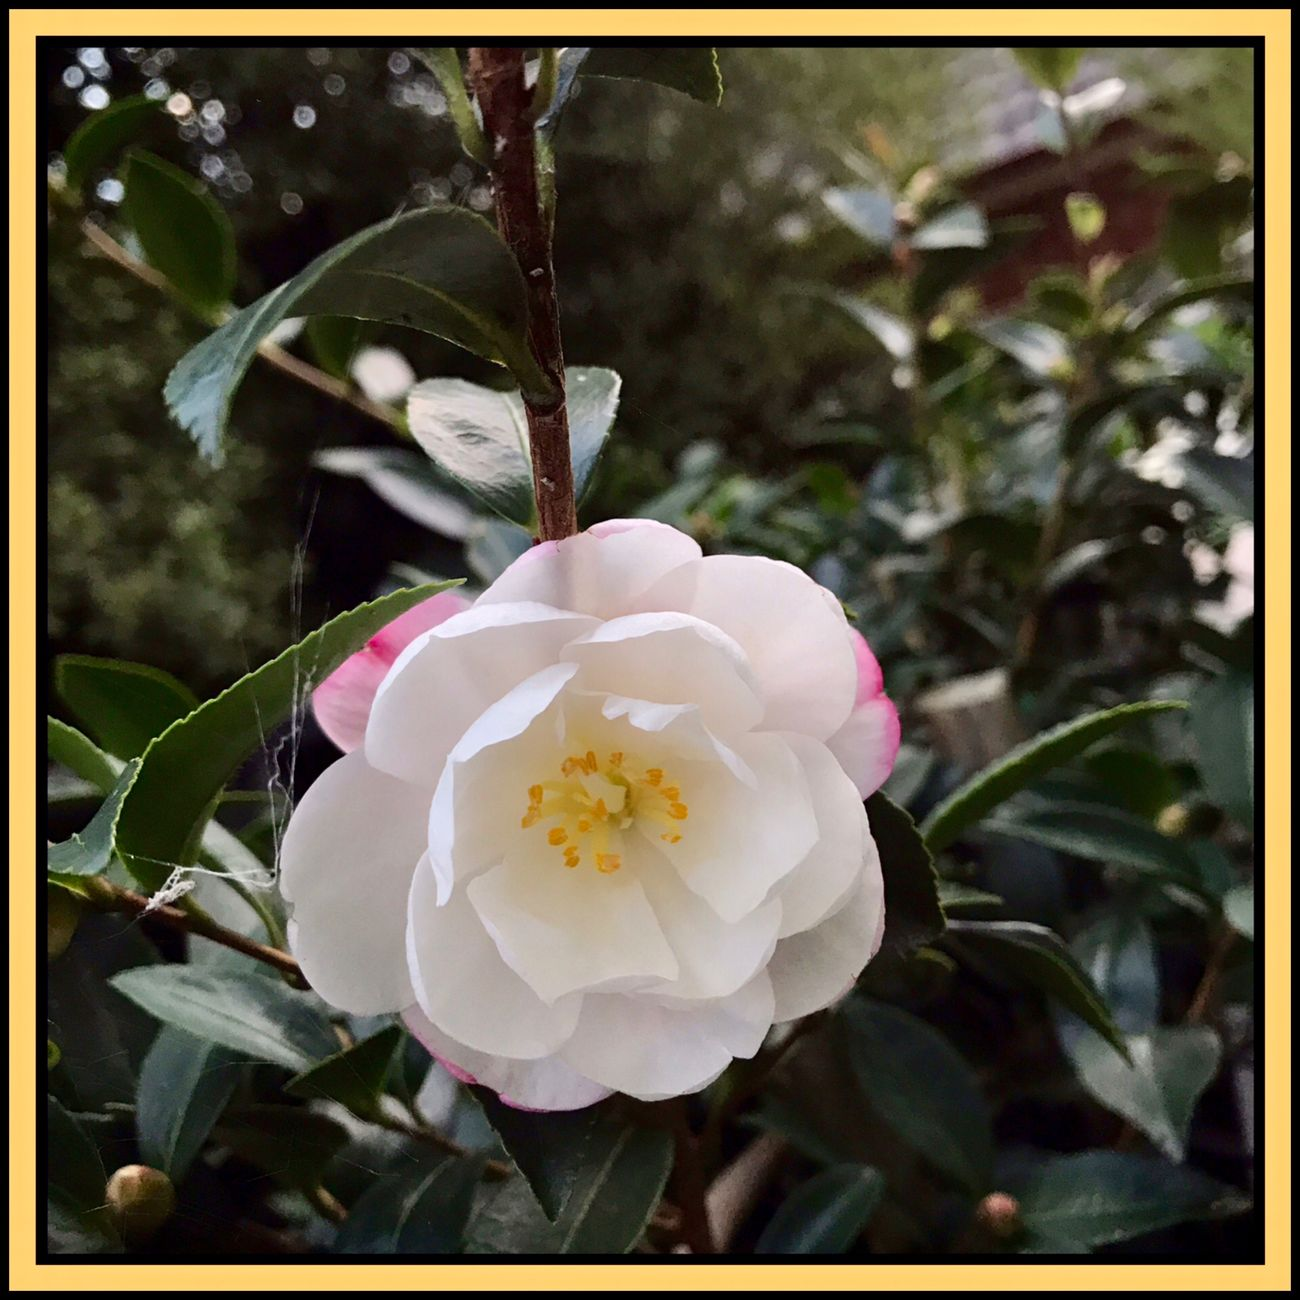 camellia flower in bloom 🌸🍃🌸 Camellia Flower Camellia Flowers Flowers,Plants & Garden Flowers, Nature And Beauty Flower Collection 🌸🍃🌸